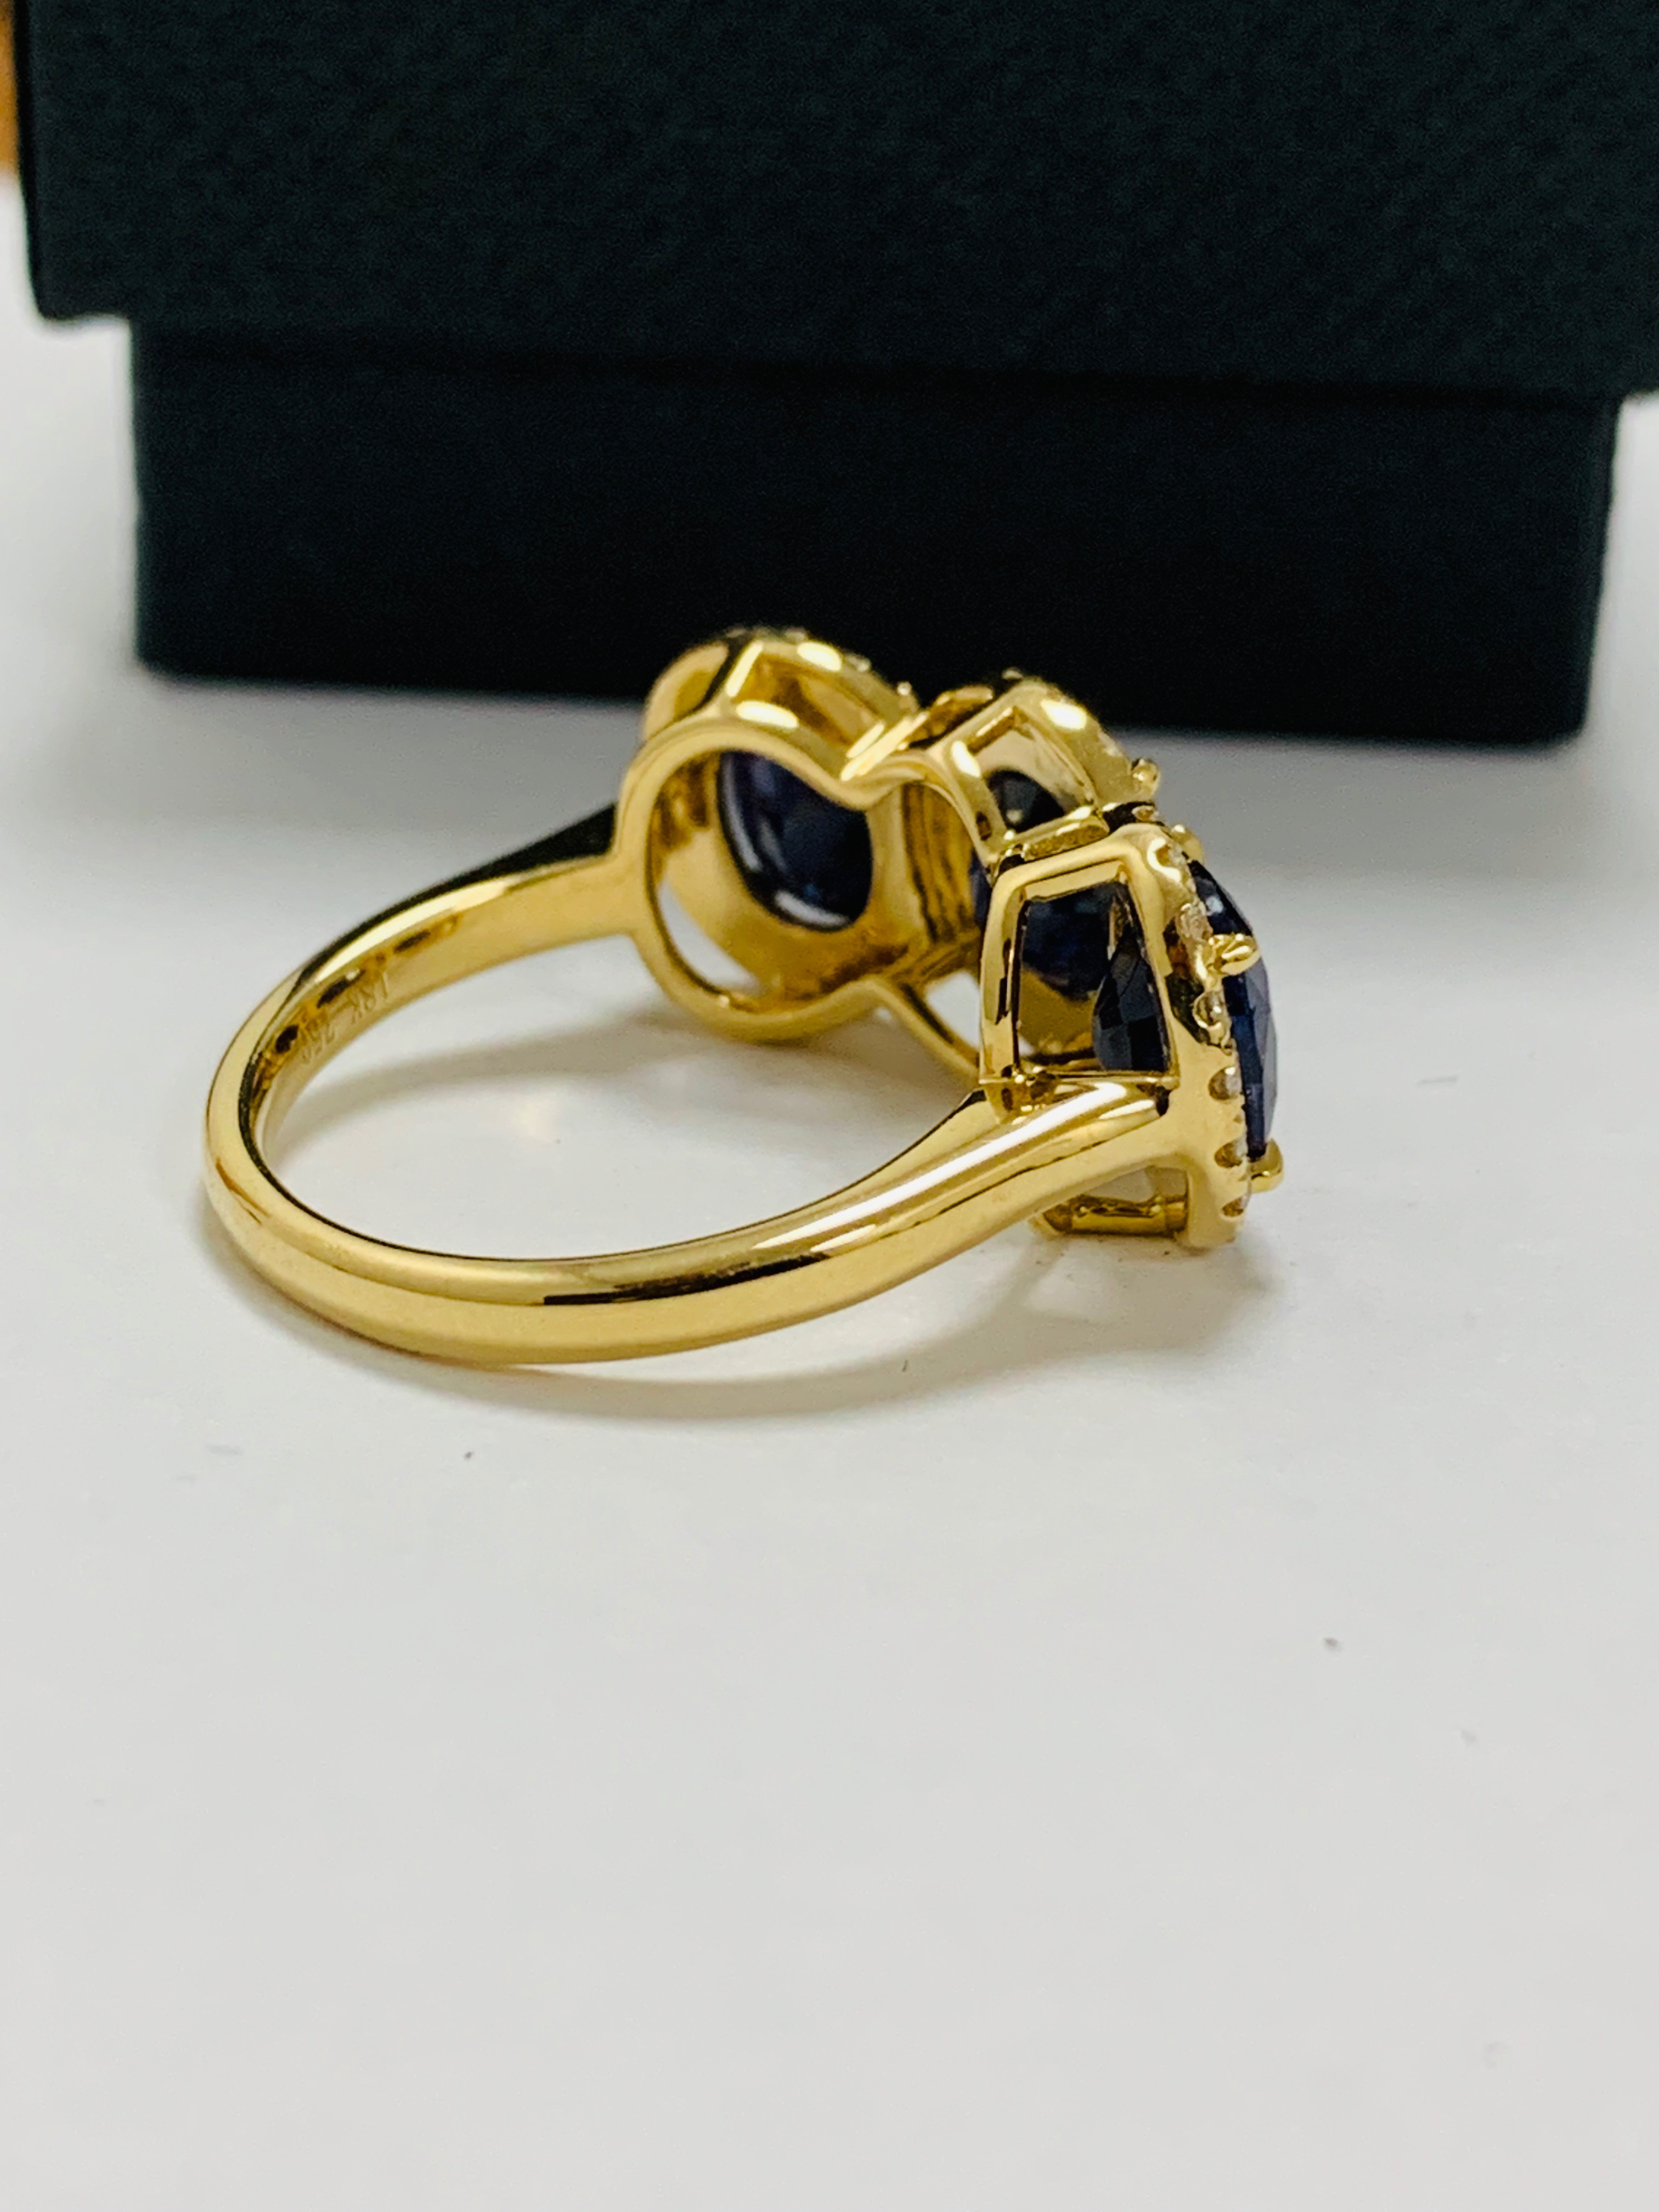 18ct yellow gold sapphire and diamond ring - Image 7 of 12